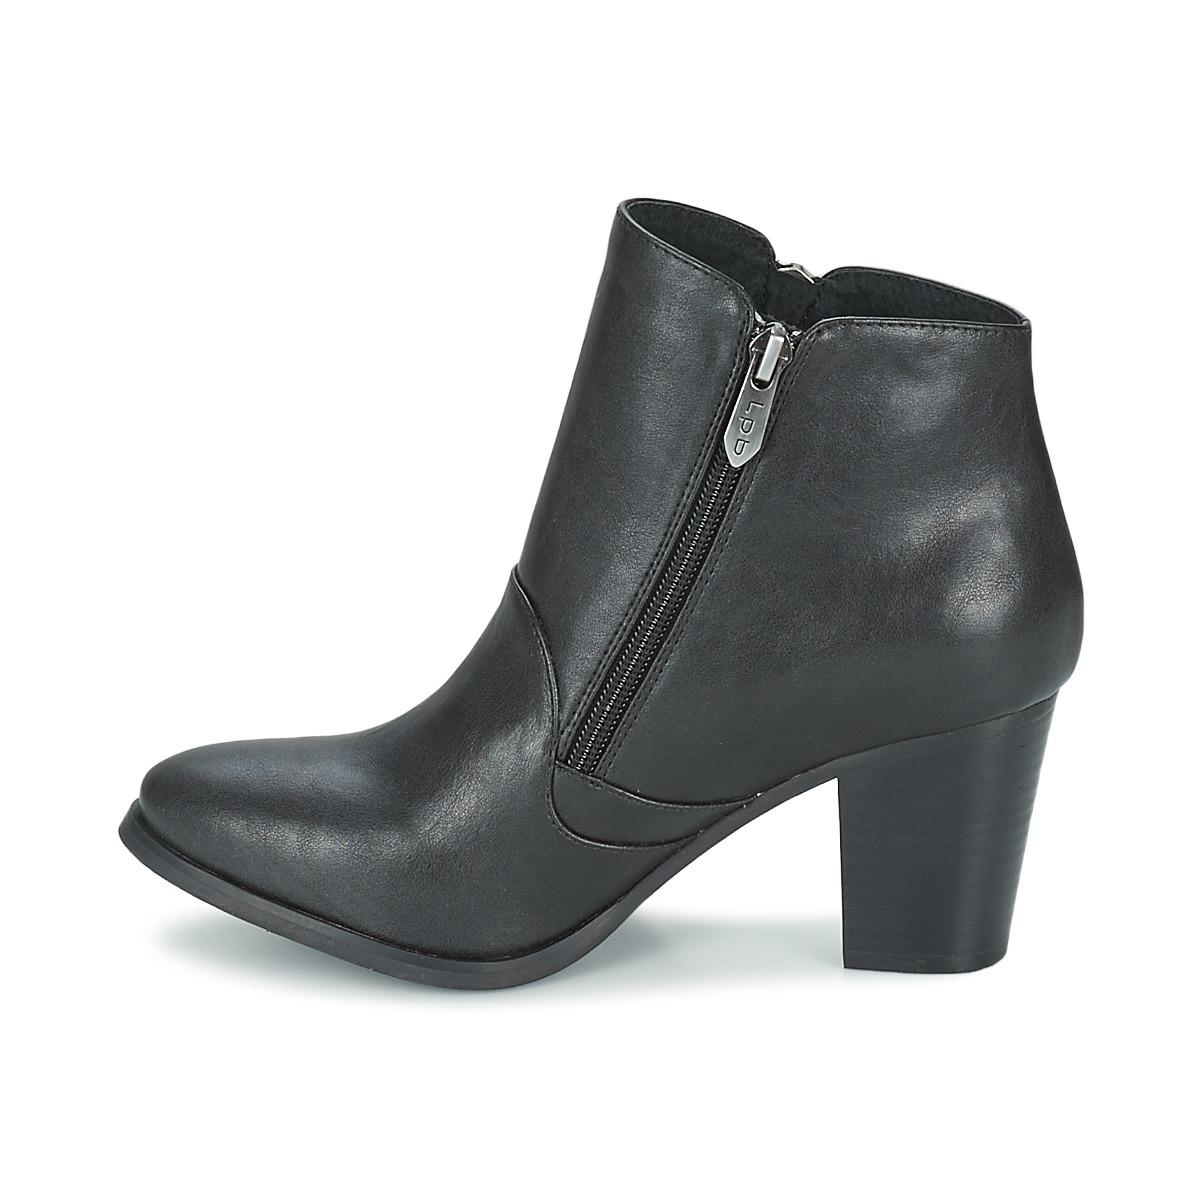 Les P'tites Bombes Synthetic Pony Women's Low Ankle Boots In Black